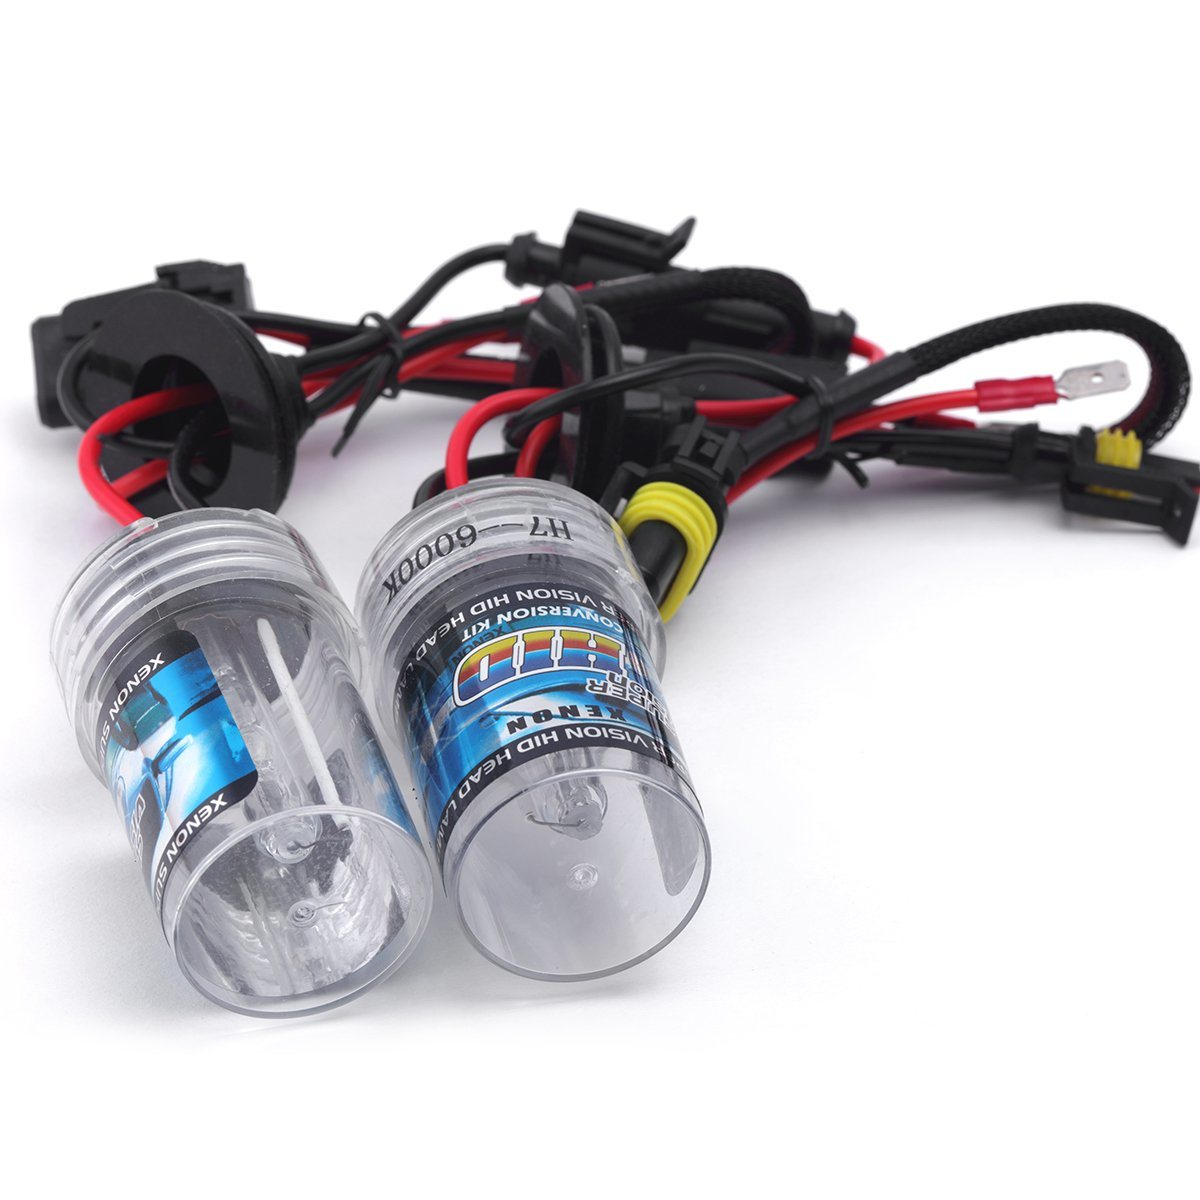 D4R D4S Xenon HID Headlight Replacement Wire Bulb AC 35W KIT 4300K Low Beam S1